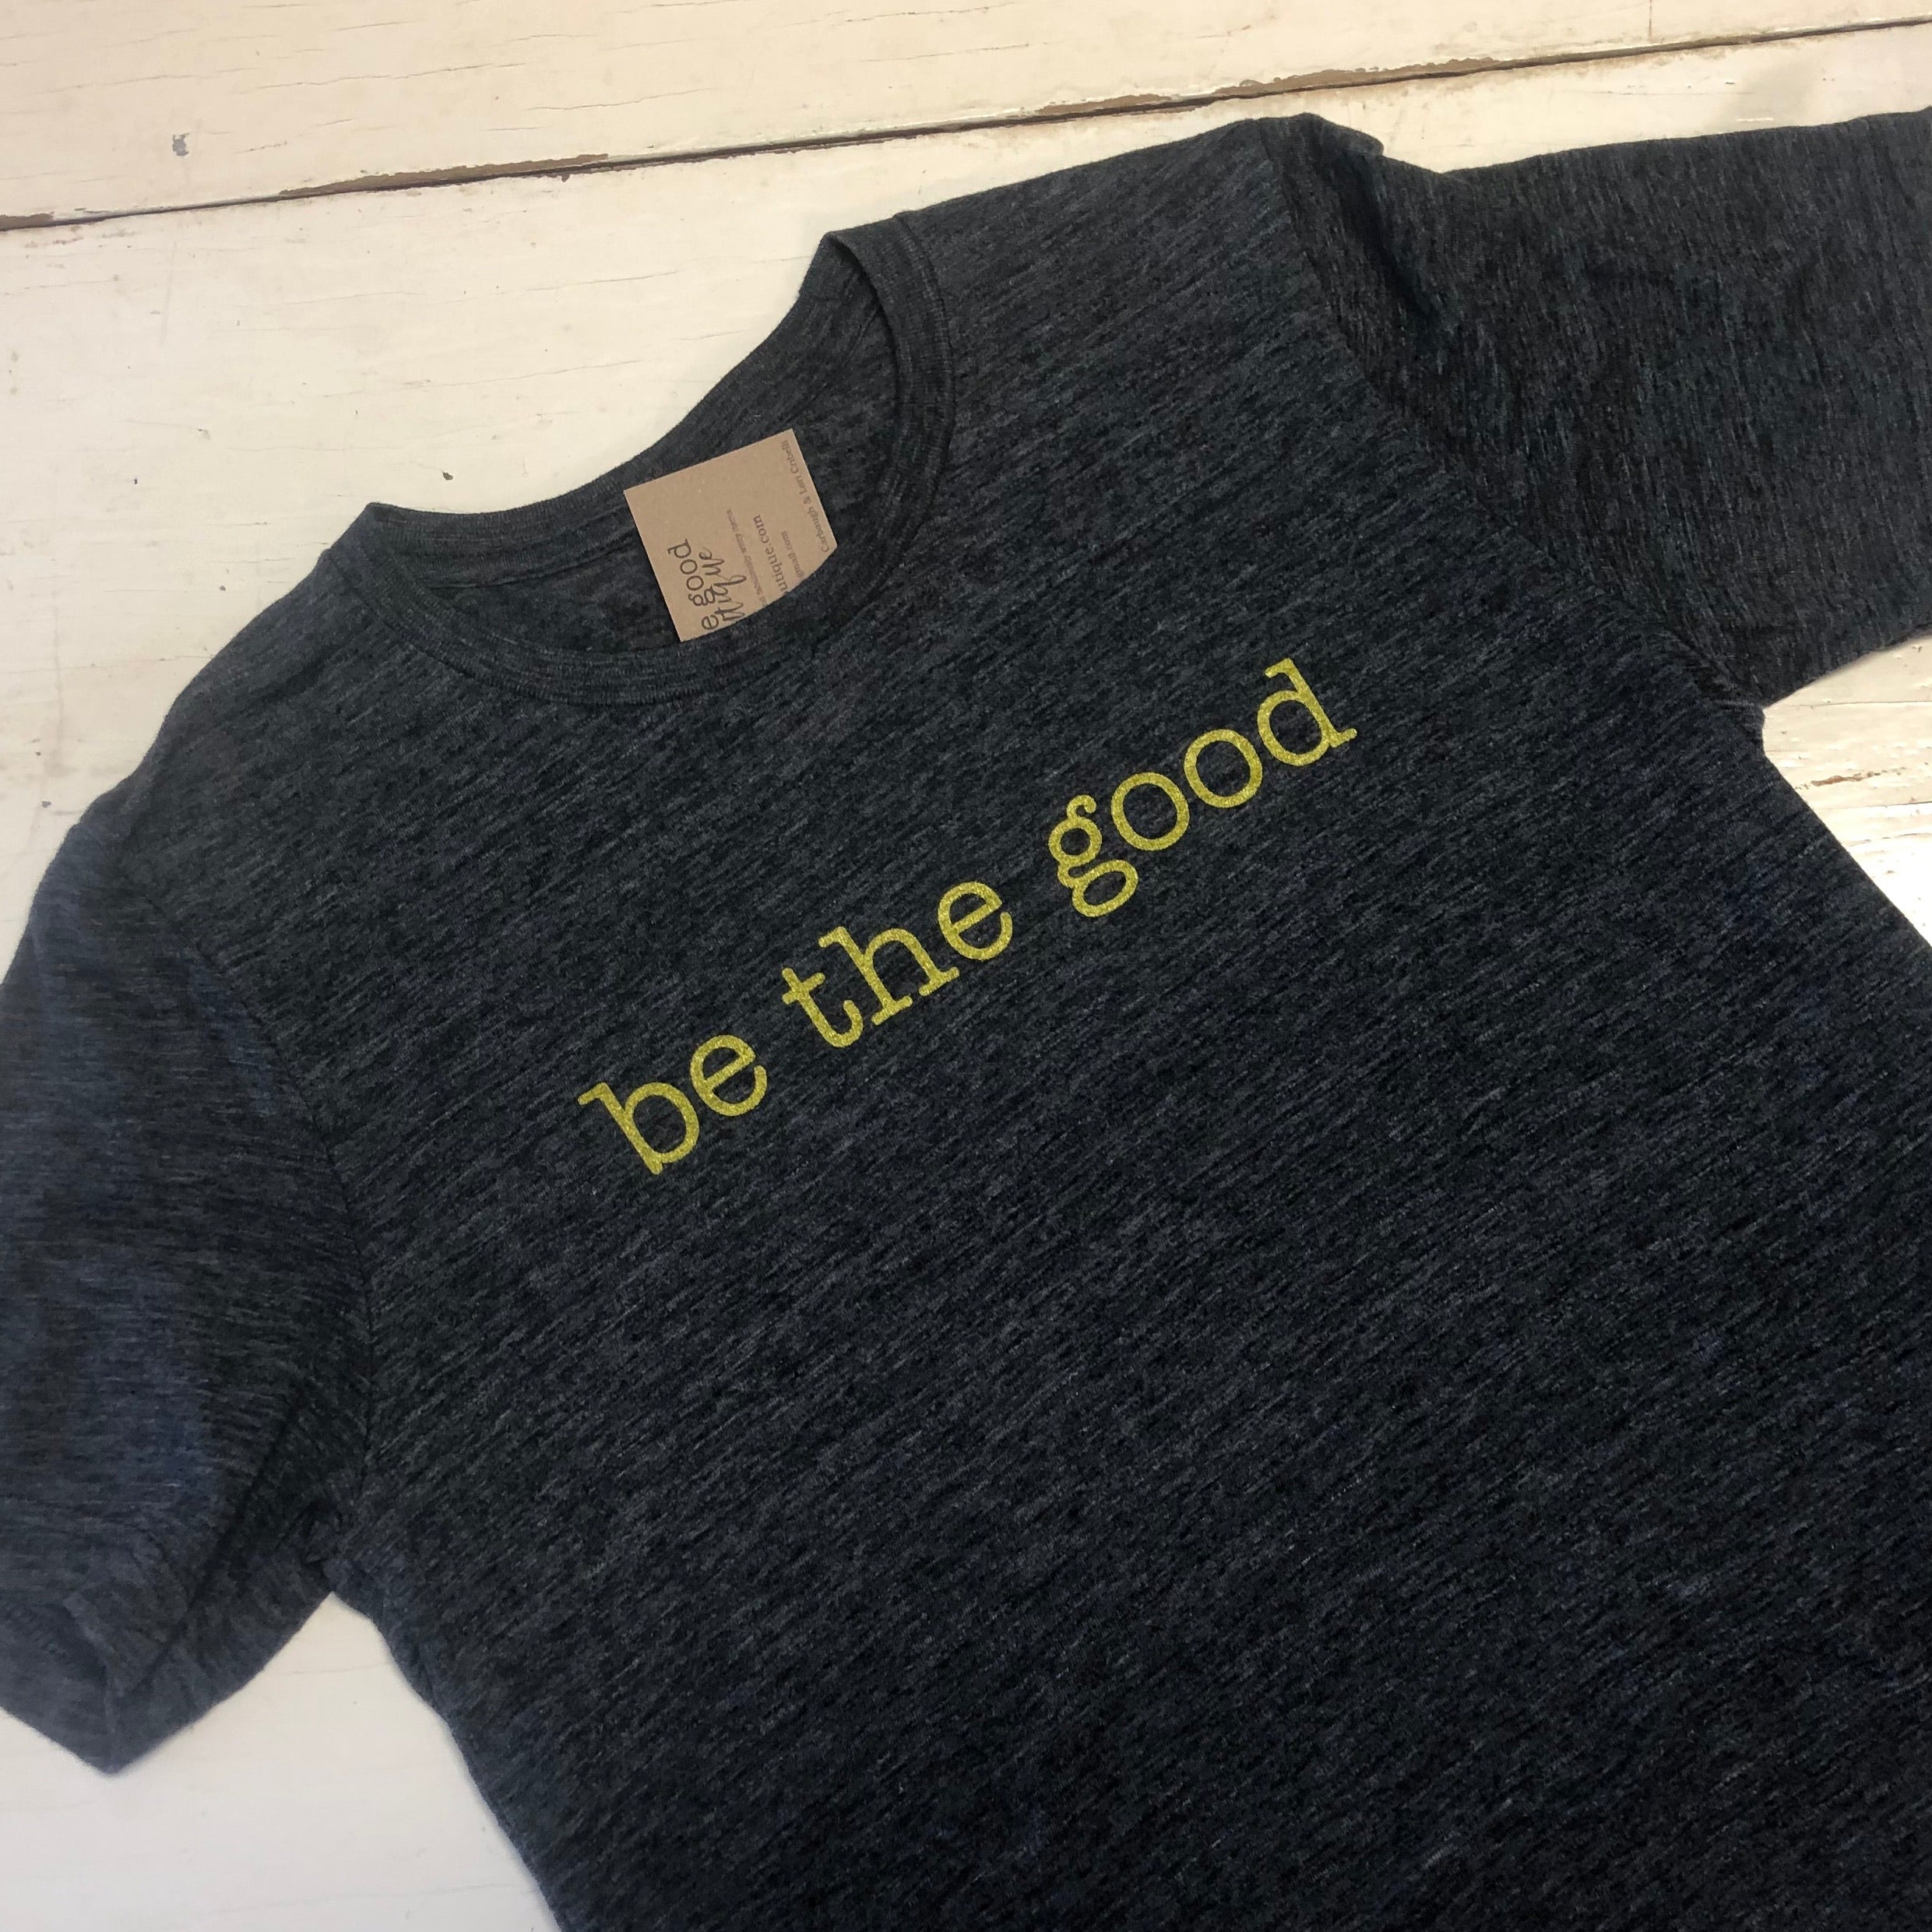 Be the Good Gold T-shirt